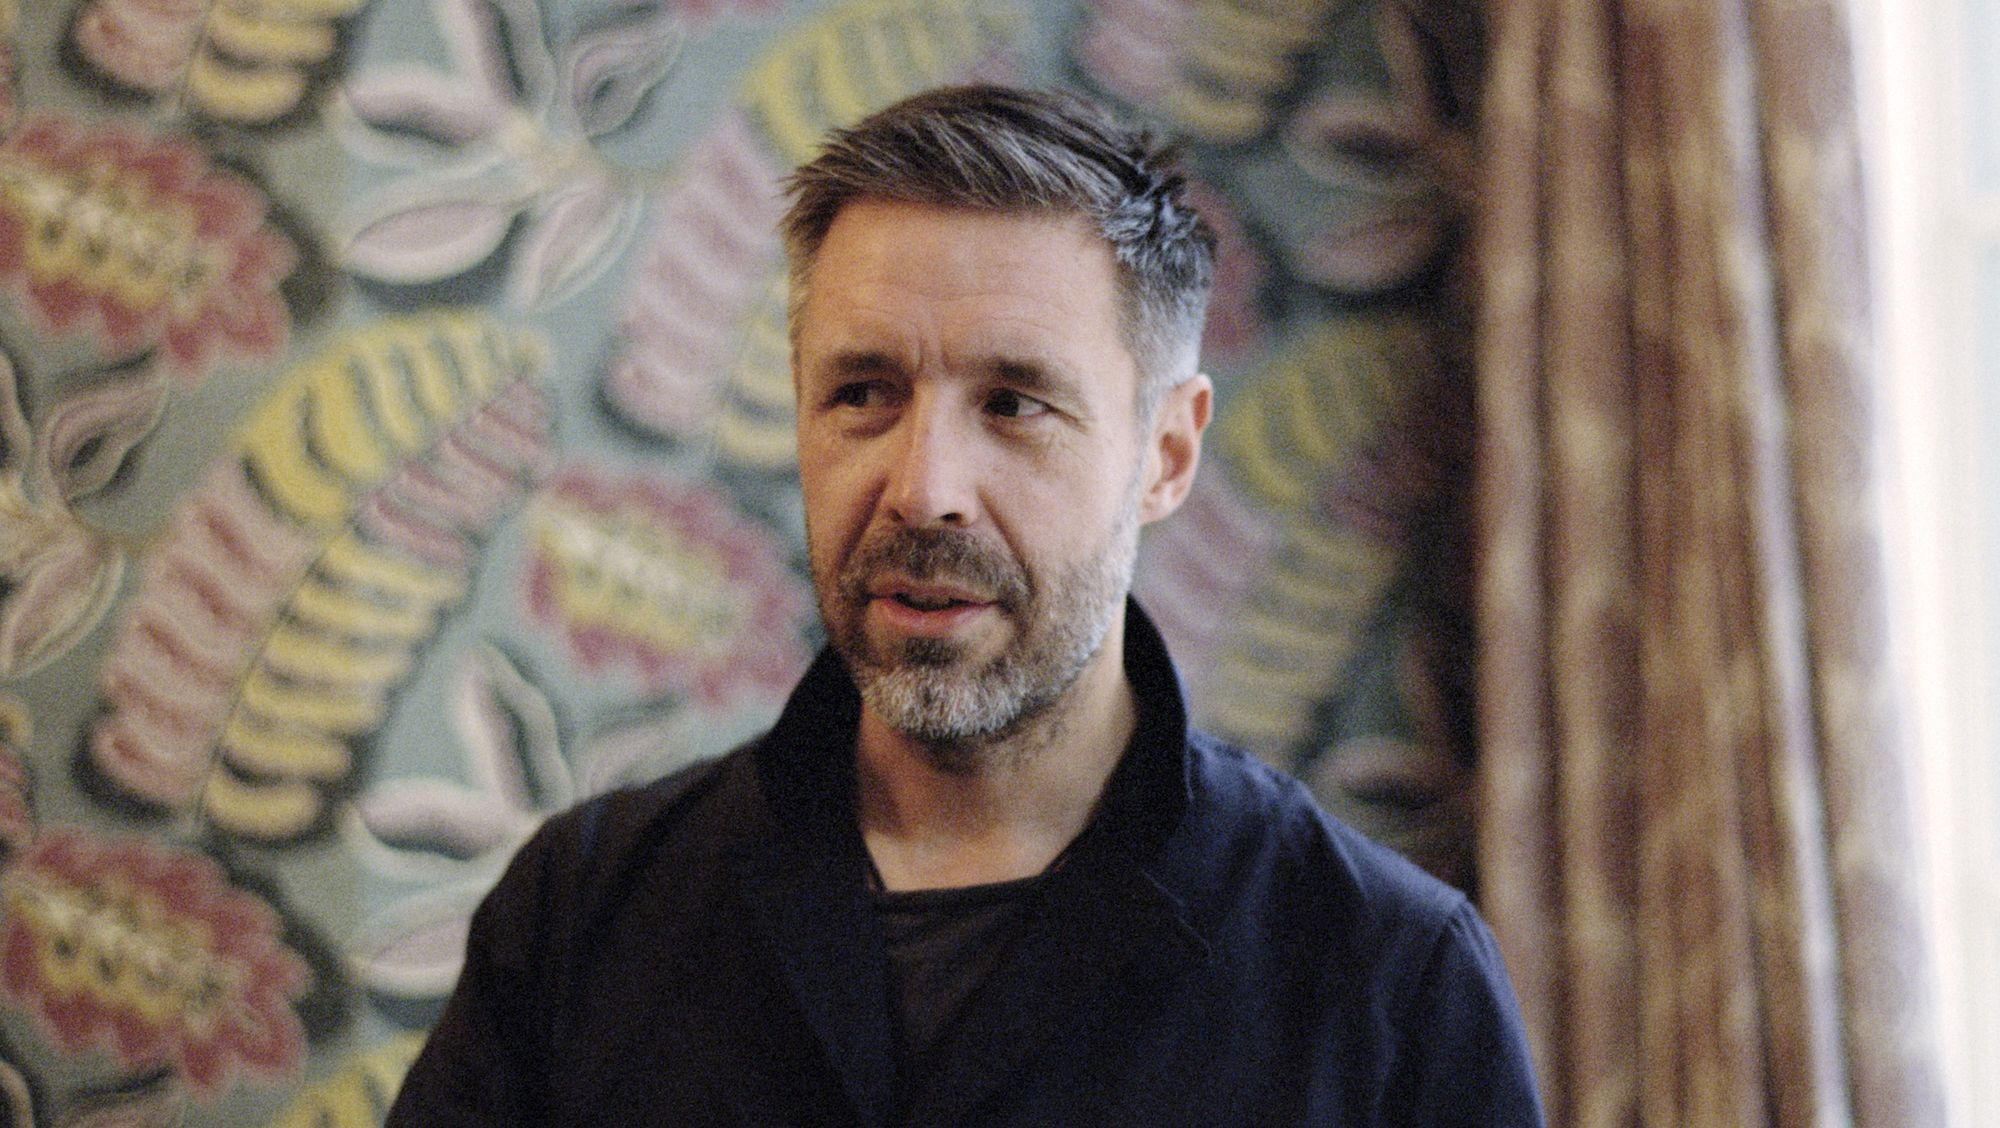 Paddy Considine: What I've Learned